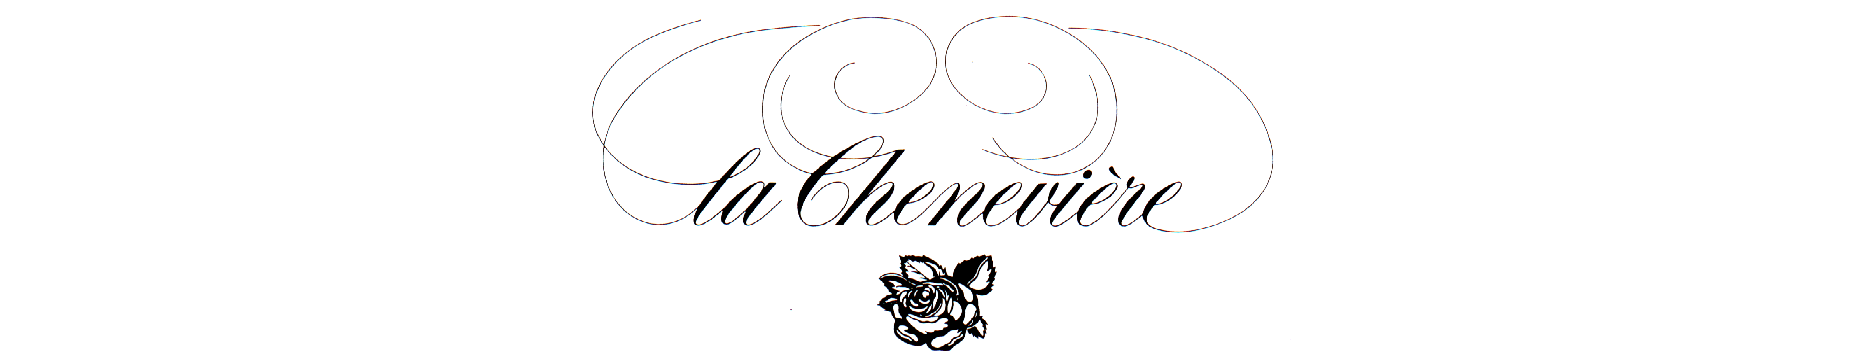 LOGO cheneviere transparant.png